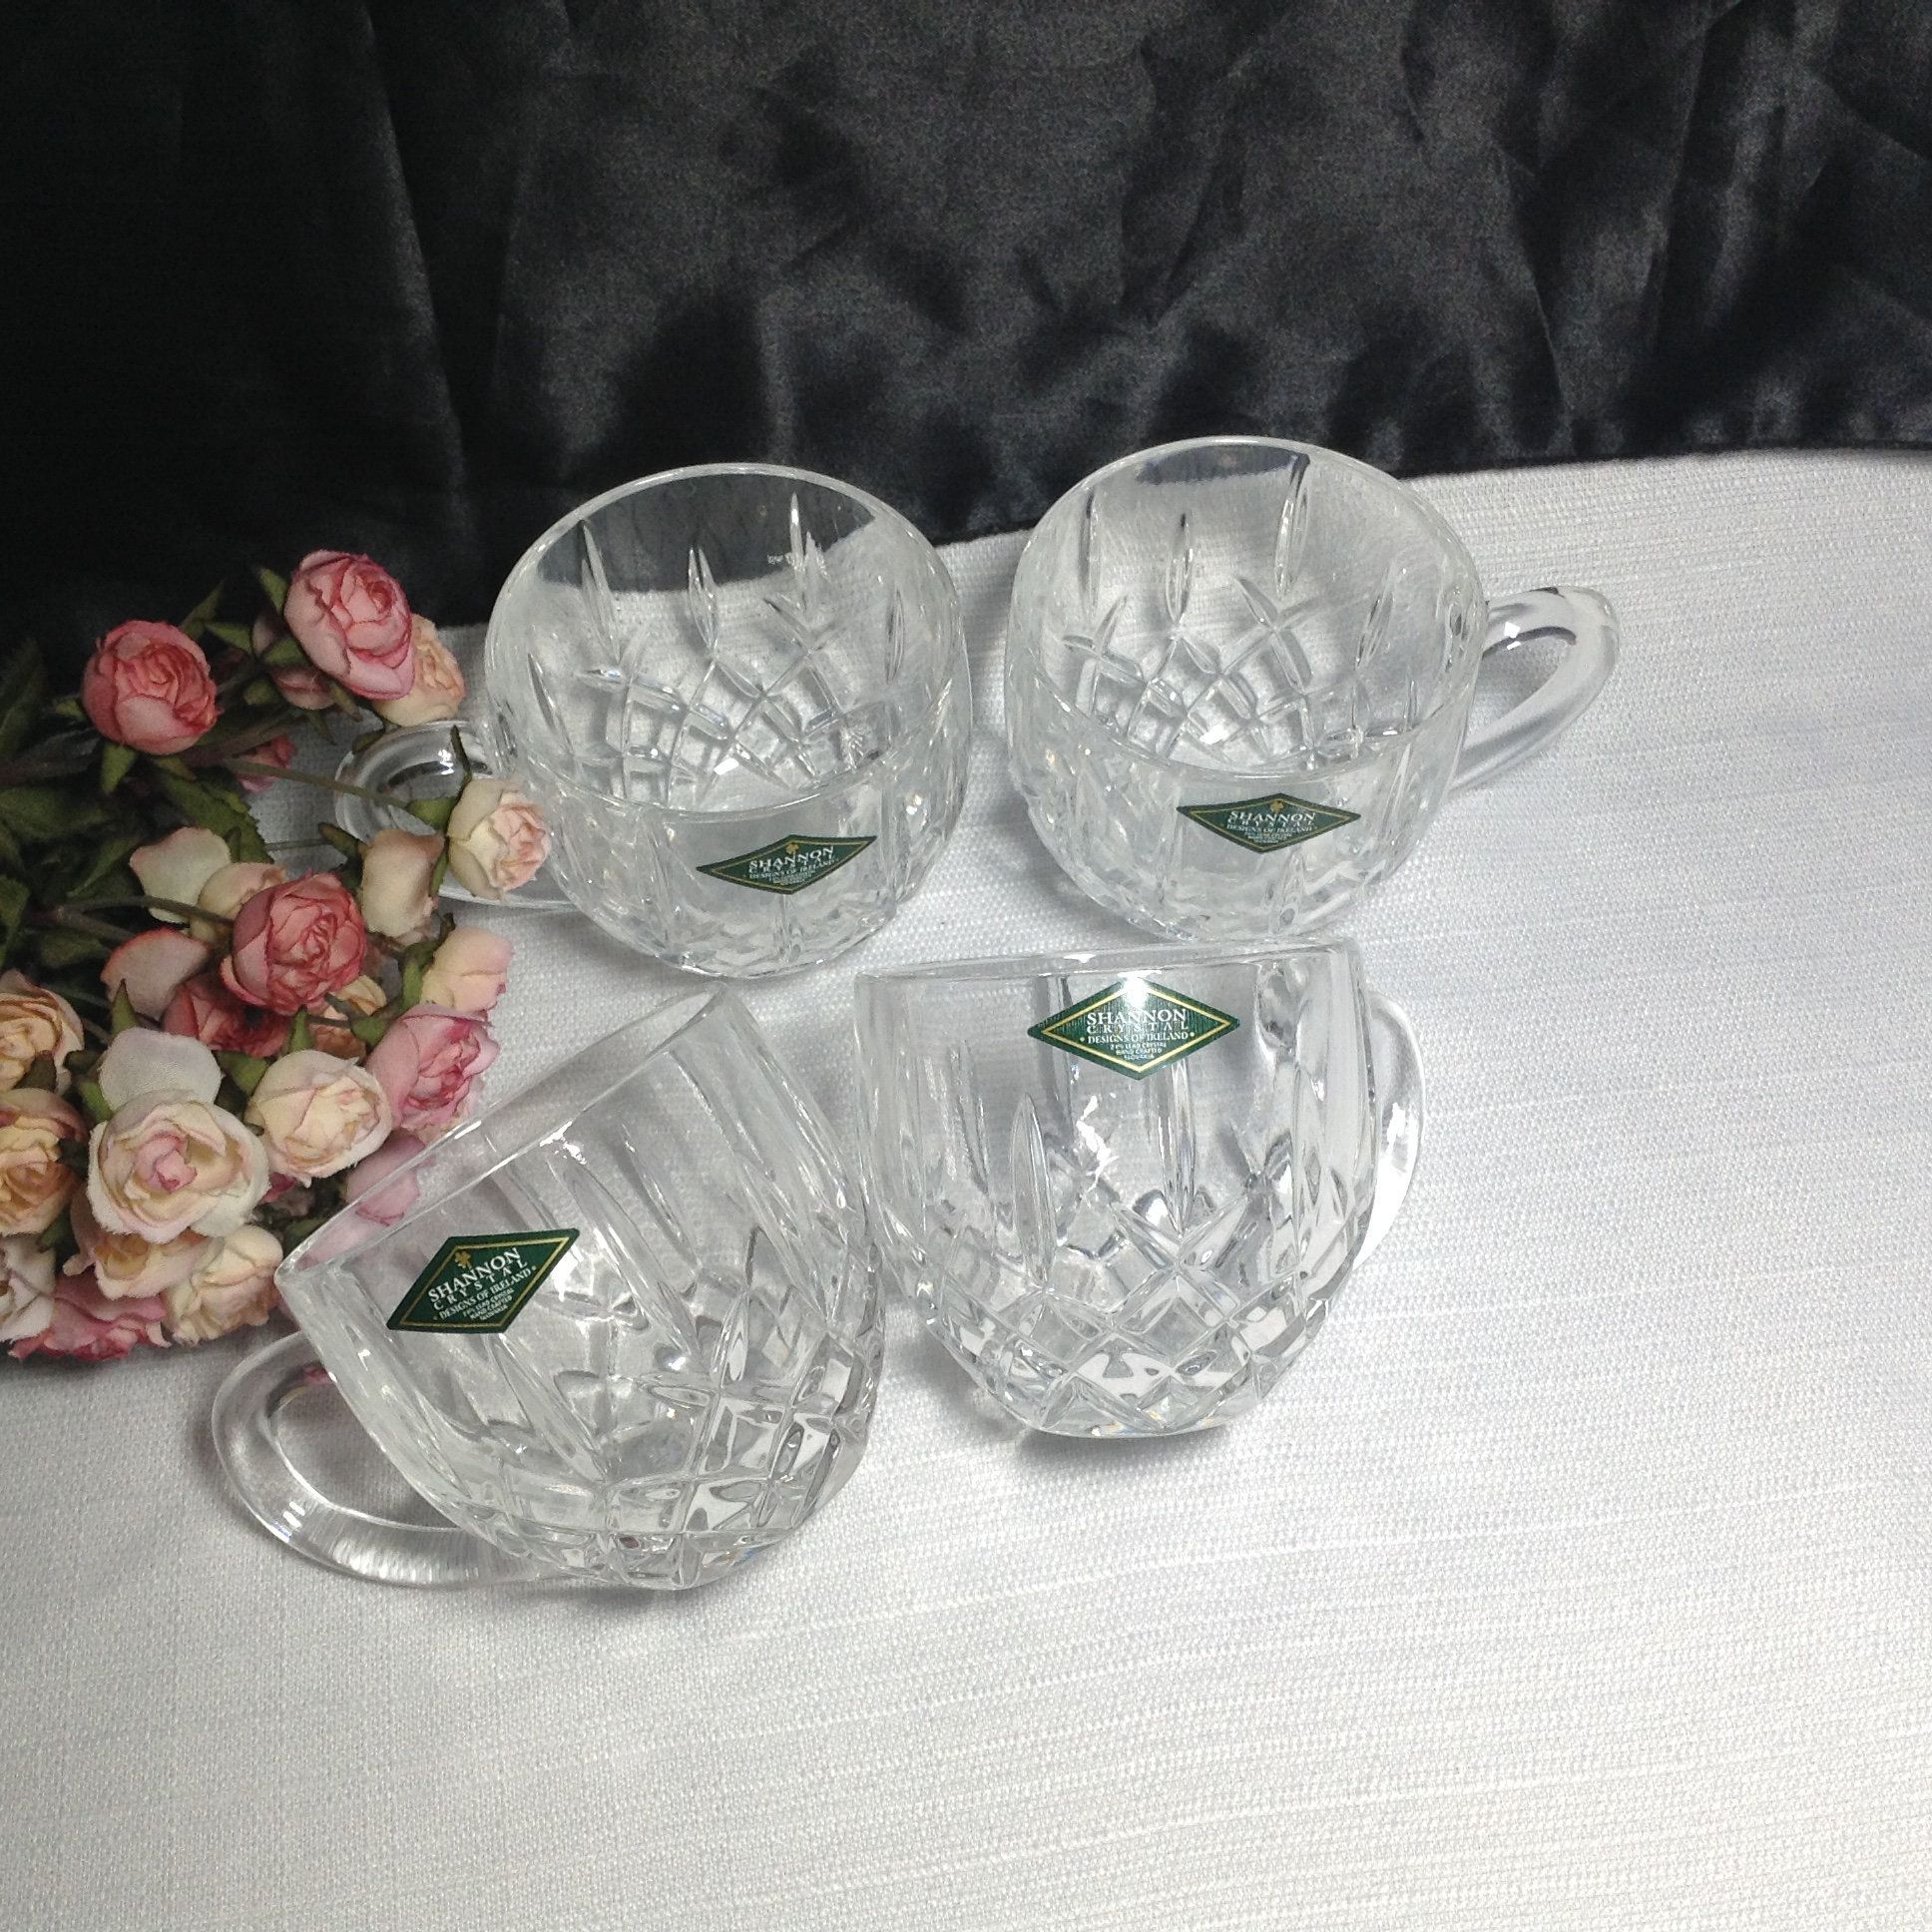 4 Shannon Crystal Glass Cups in the Original Gift Box